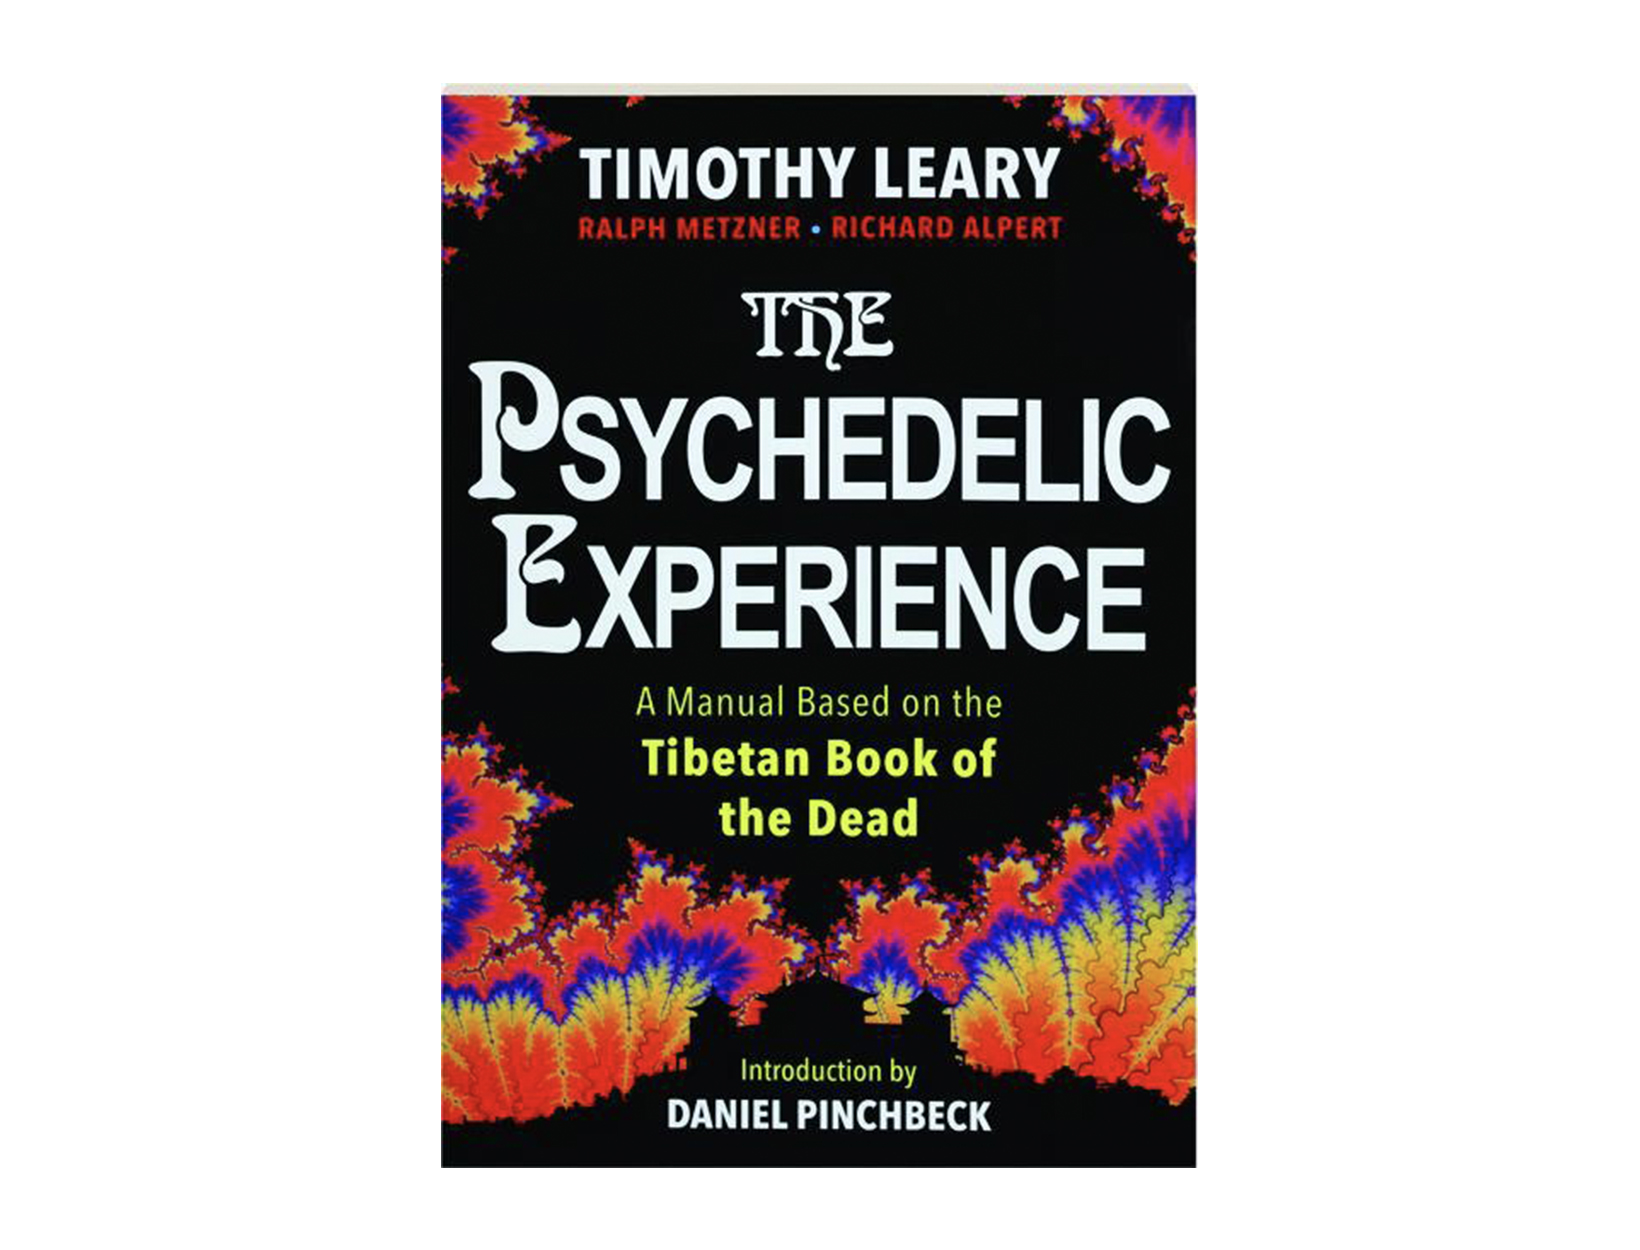 <em>The Psychedelic Experience</em> by Timothy Leary, Ralph Metzner, and Richard Alpert